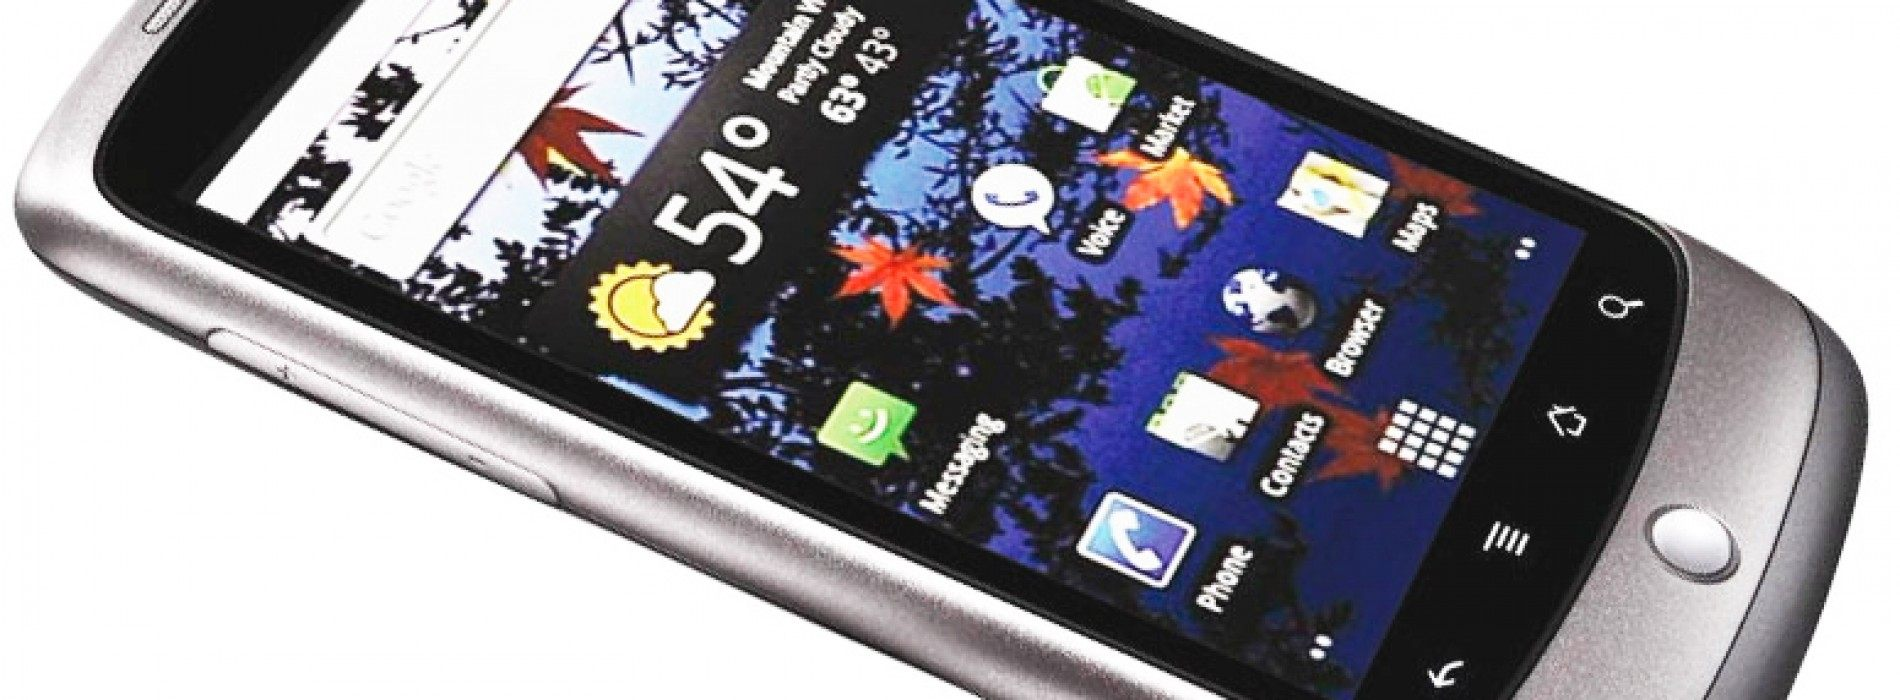 Apple no teme al Nexus One